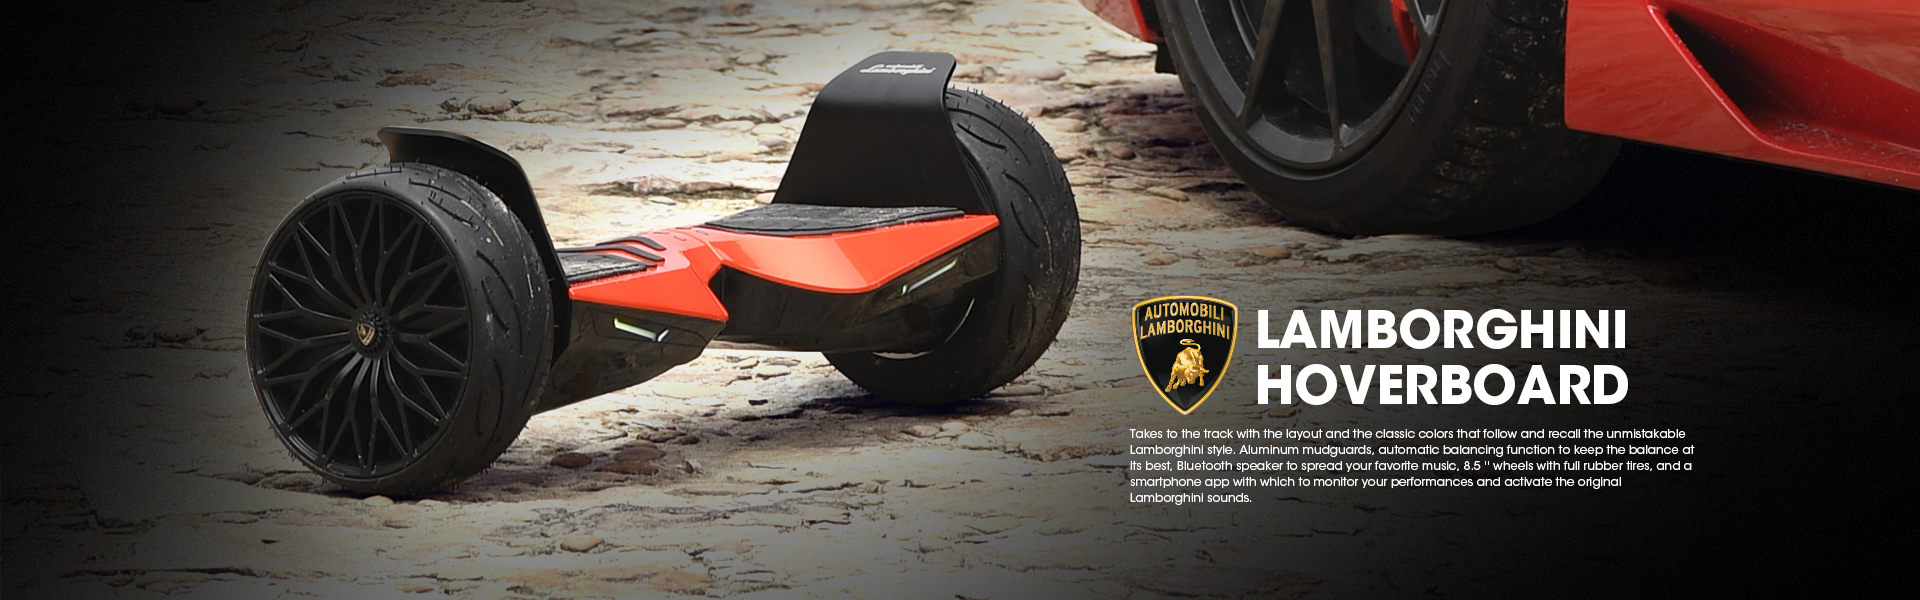 Bluetooth Hoverboard , Buy Self Balancing Scooter Including